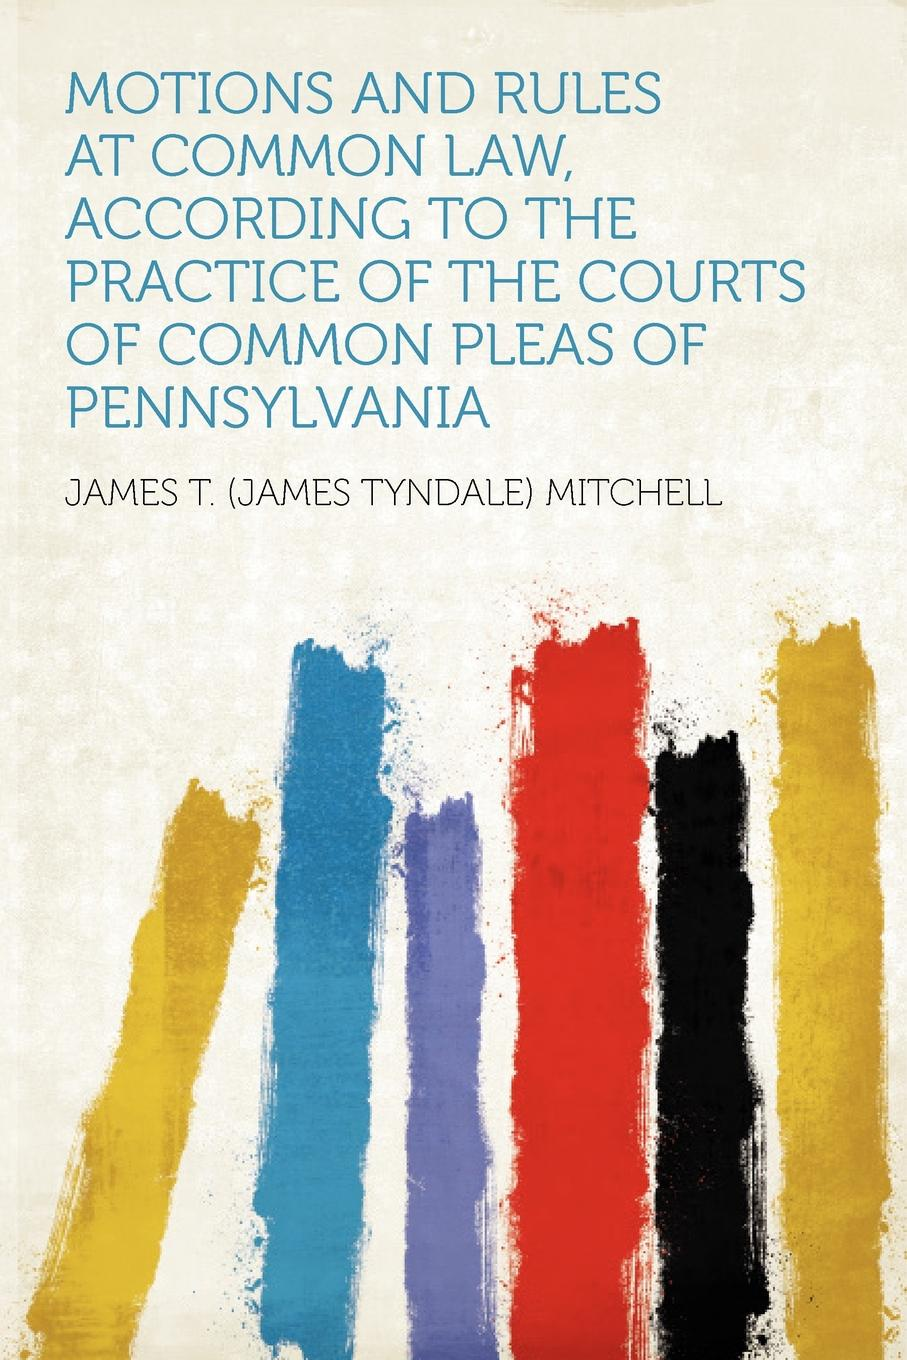 Motions and Rules at Common Law, According to the Practice of Courts Pleas Pennsylvania